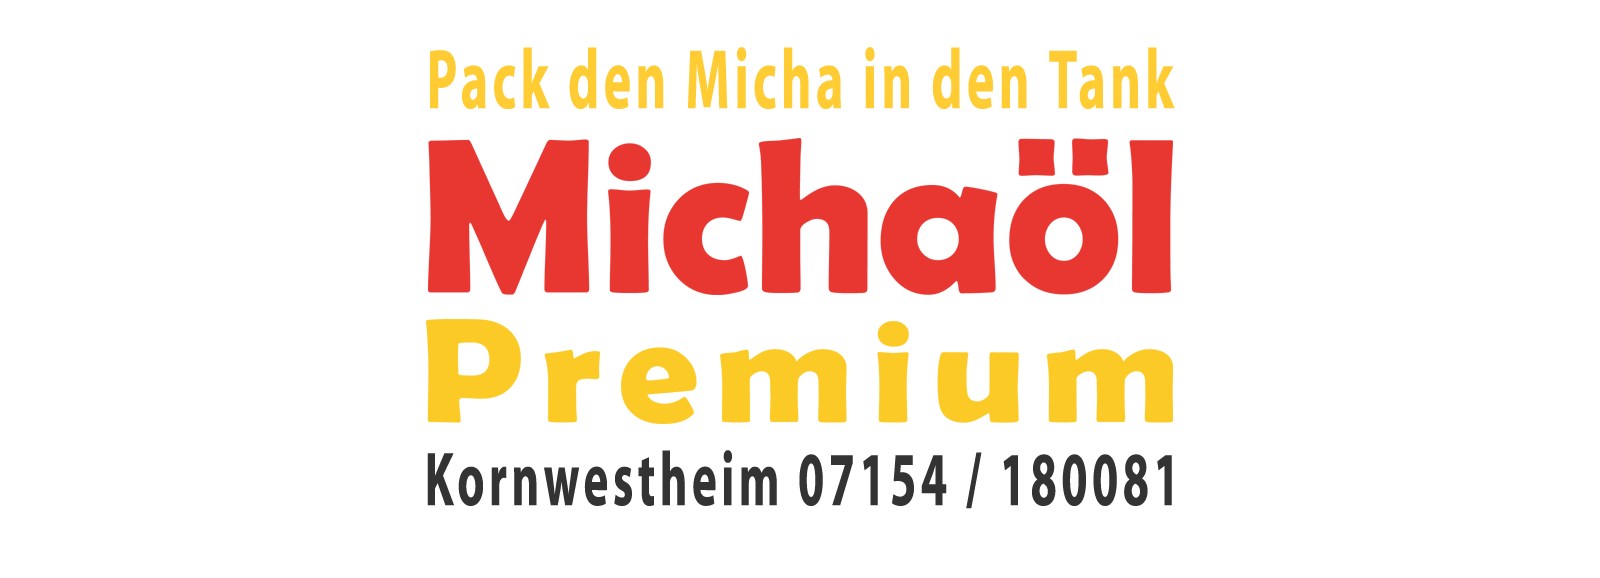 Pack den Micha in den Tank: Michaöl Premium Kornwestheim HighEnd Heizöl in Superqualität